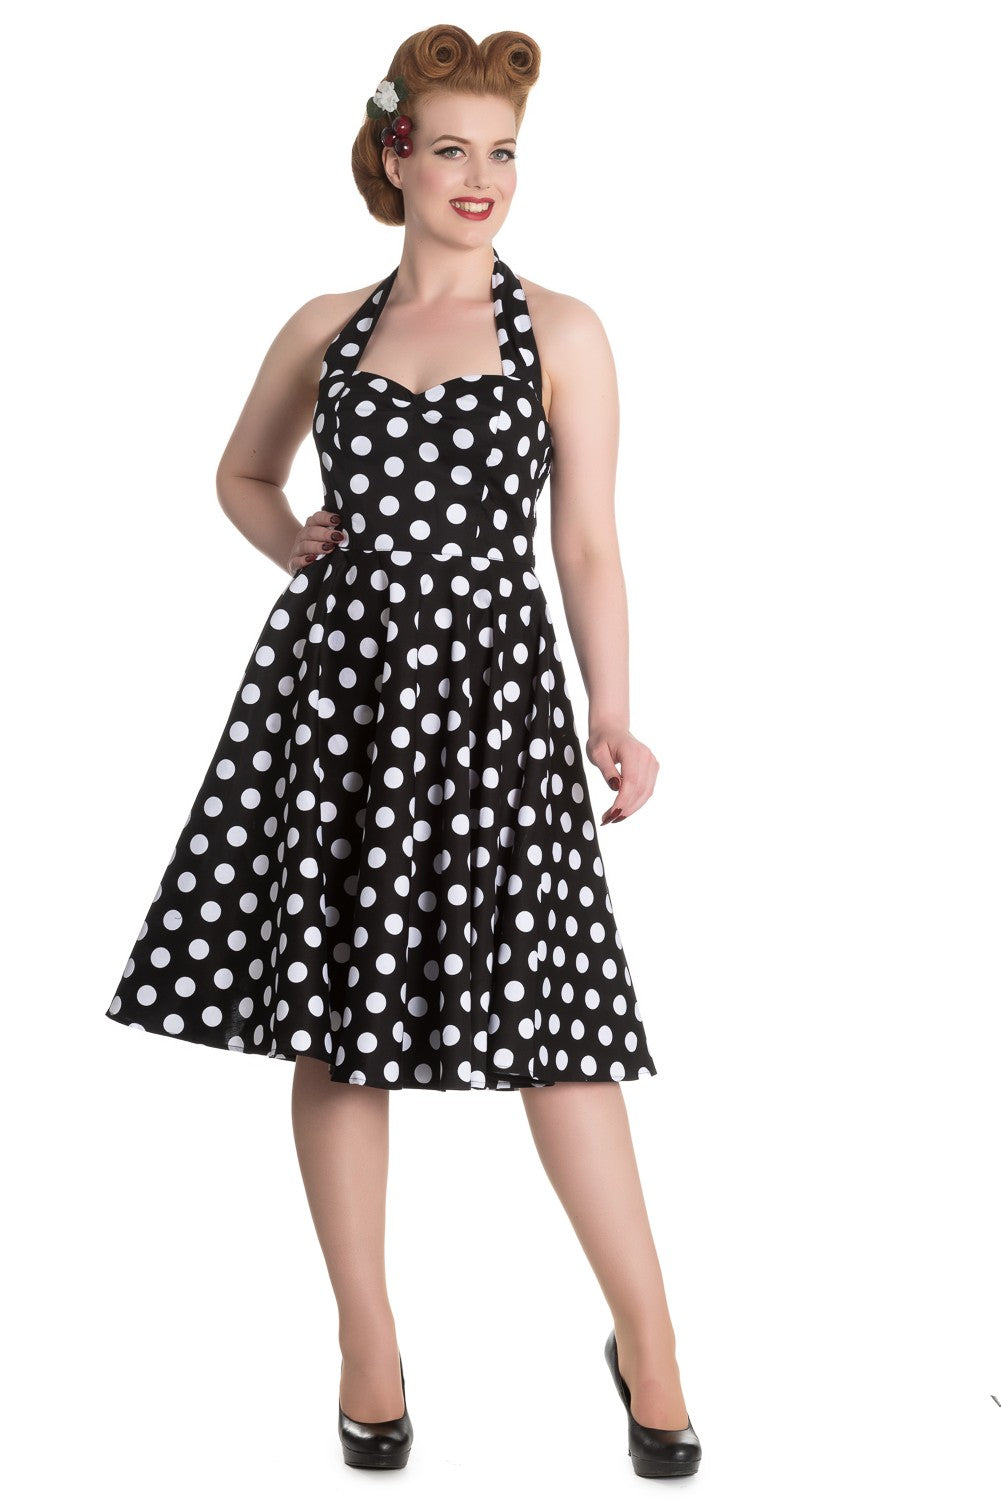 Miriam Polka Dot 1950's Pin-Up Dress